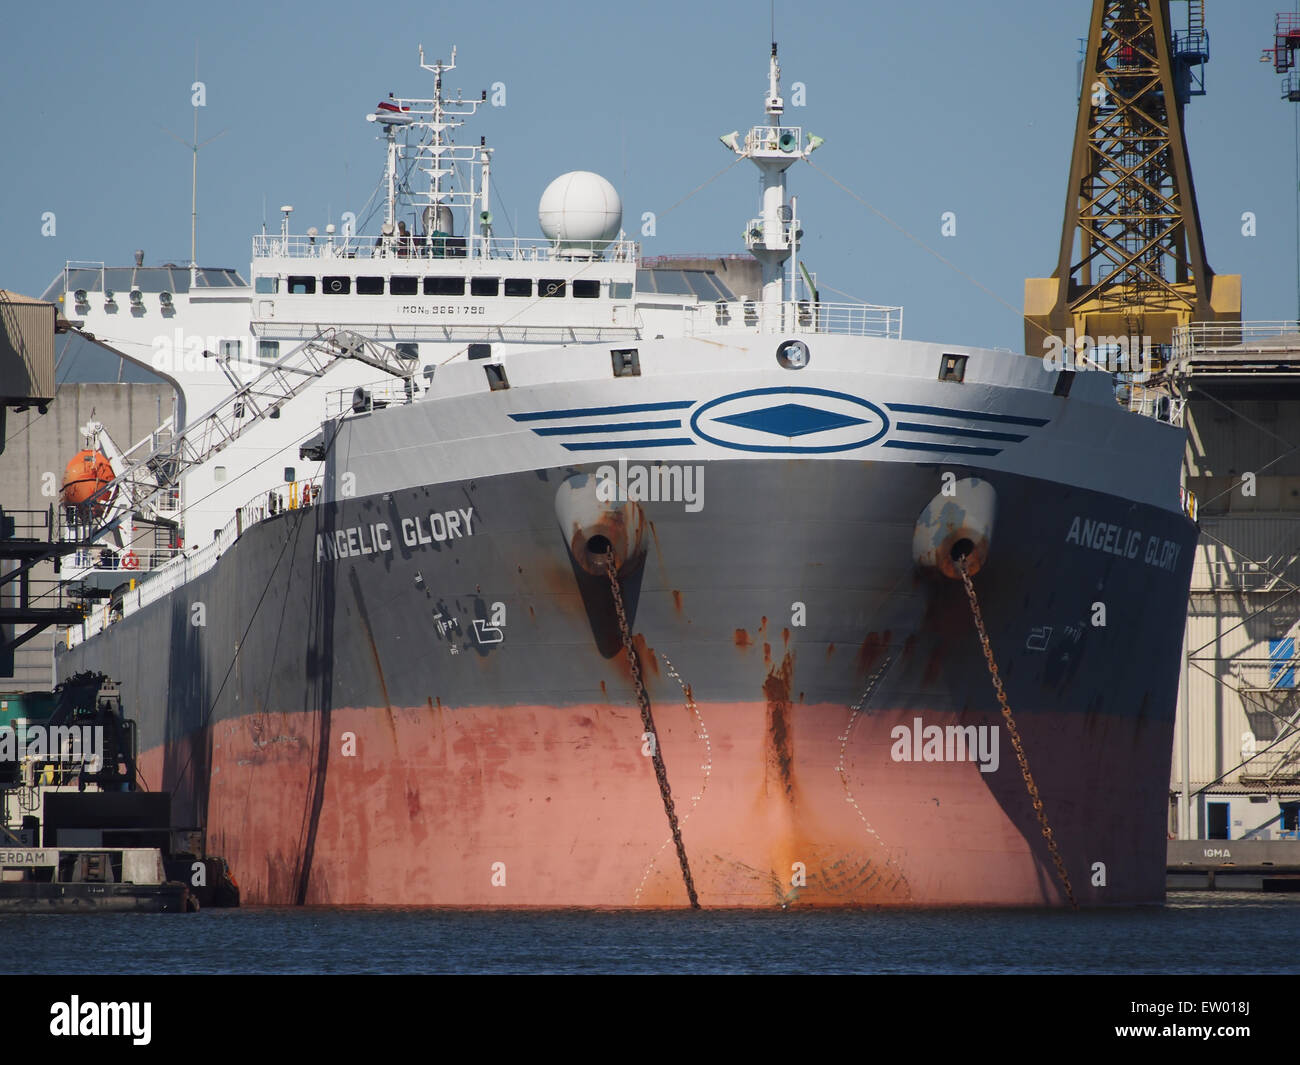 Angelic Glory - IMO 9261798 - Callsign SVCT, Vlothaven, Port of Amsterdam, pic1 - Stock Image